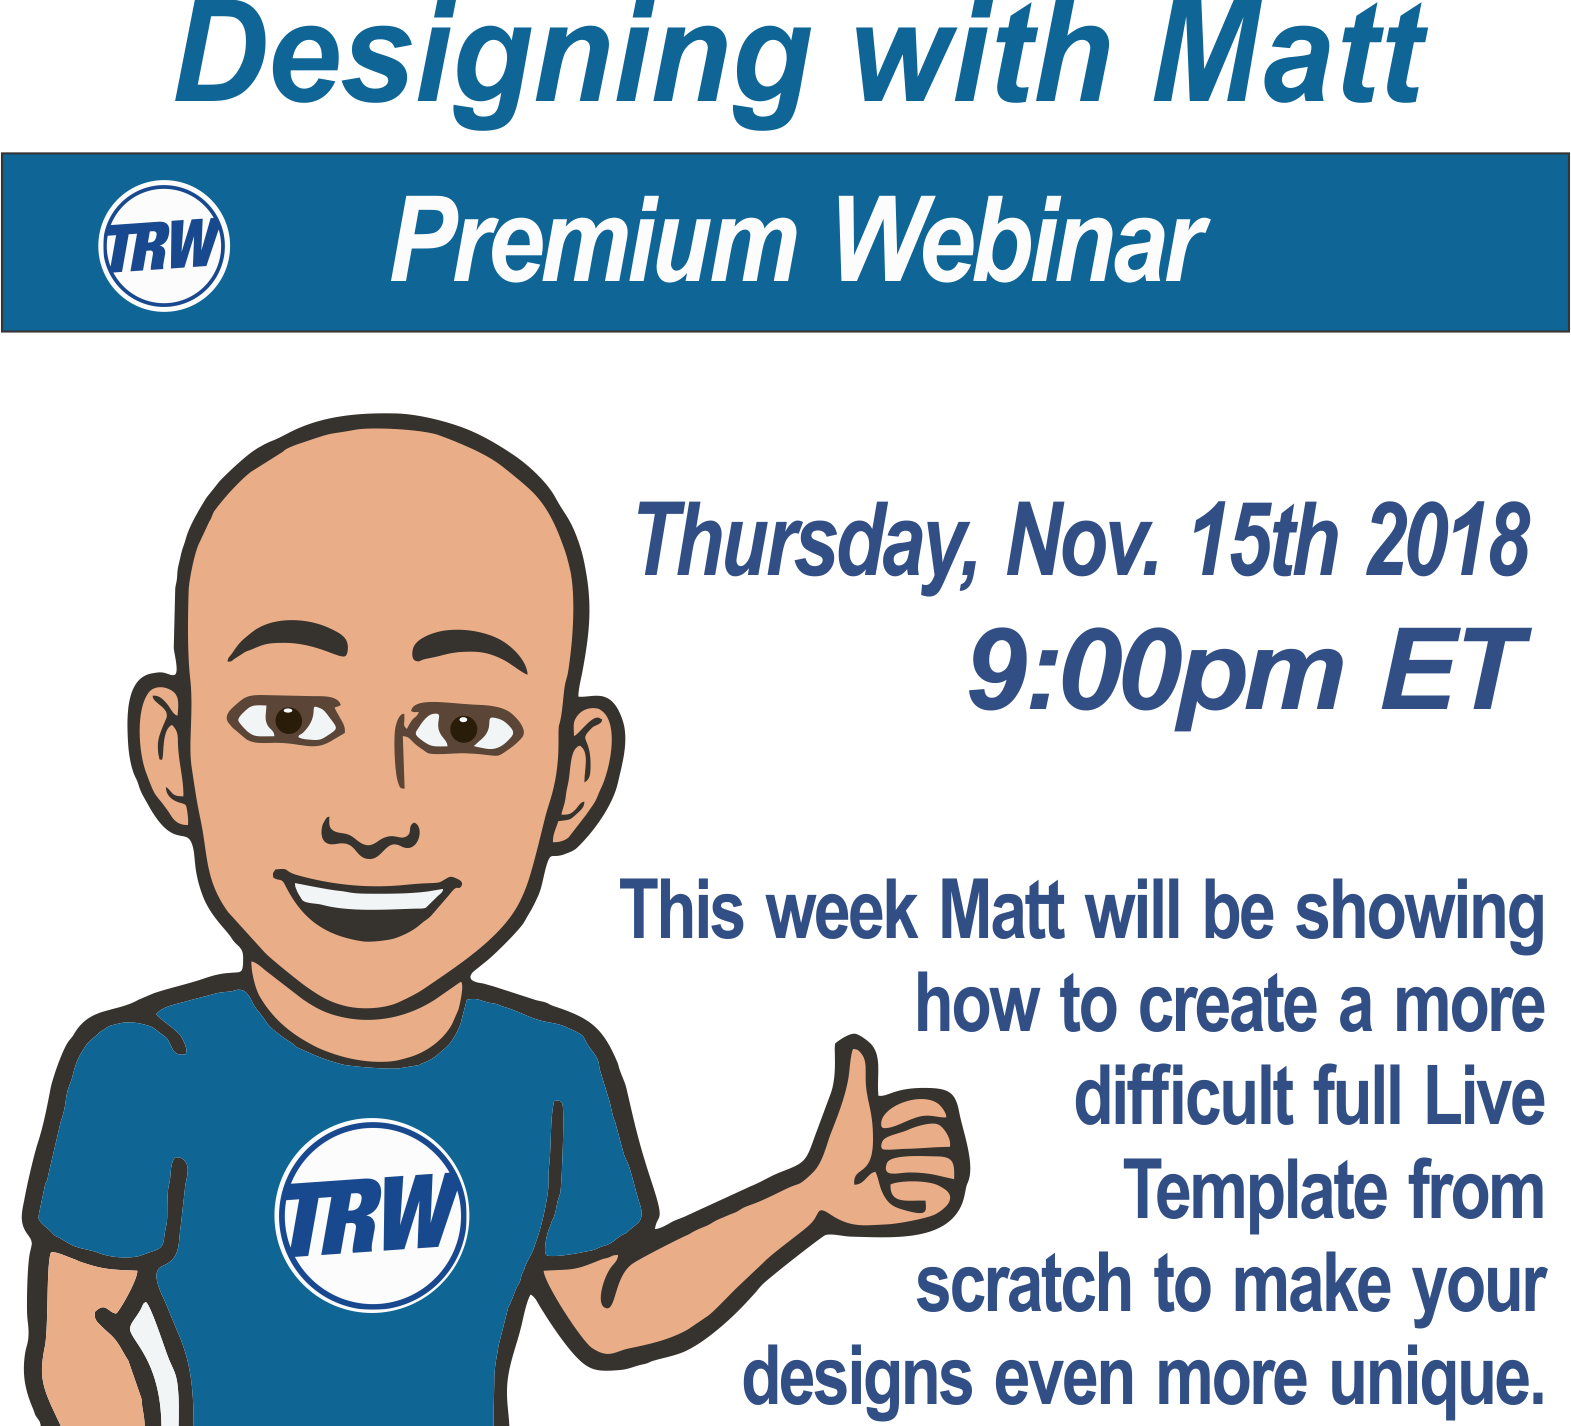 Designing with Matt - Nov. 15th 2018